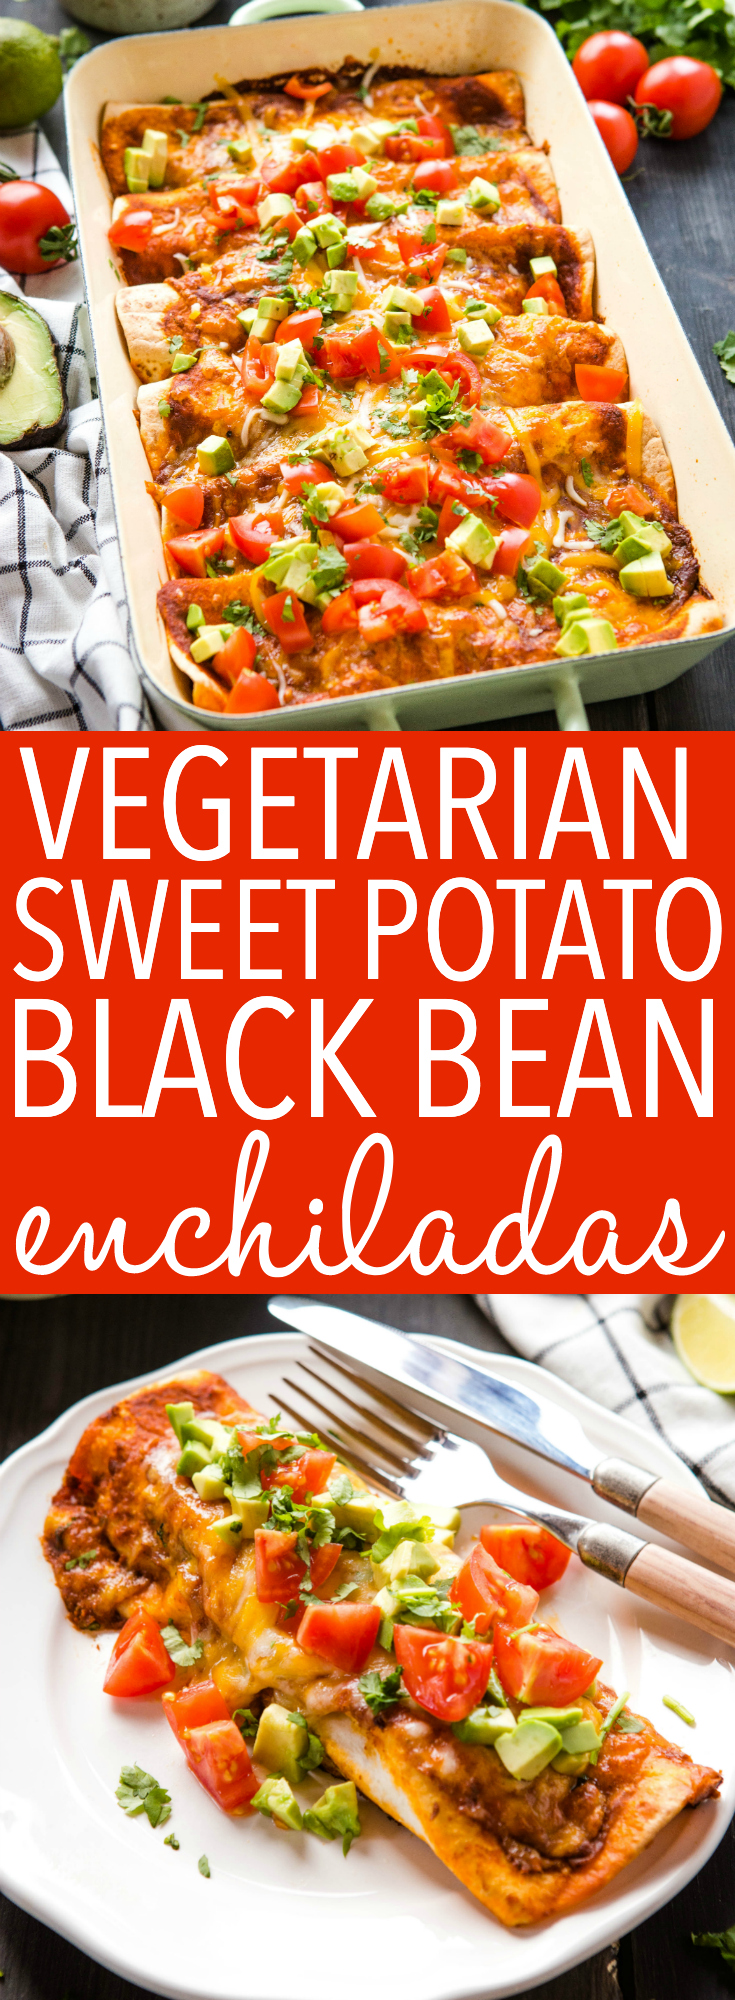 Sweet Potato Black Bean Enchiladas make a delicious healthy Mexican-inspired meal. Make this vegetarian enchiladas recipe tonight. it's kid-friendly! Recipe from thebusybaker.ca! #vegetarian #plantbased #healthy #family #mealidea #familydinner #weeknightmeal #veggies #kidfriendly #easytomake #recipe via @busybakerblog